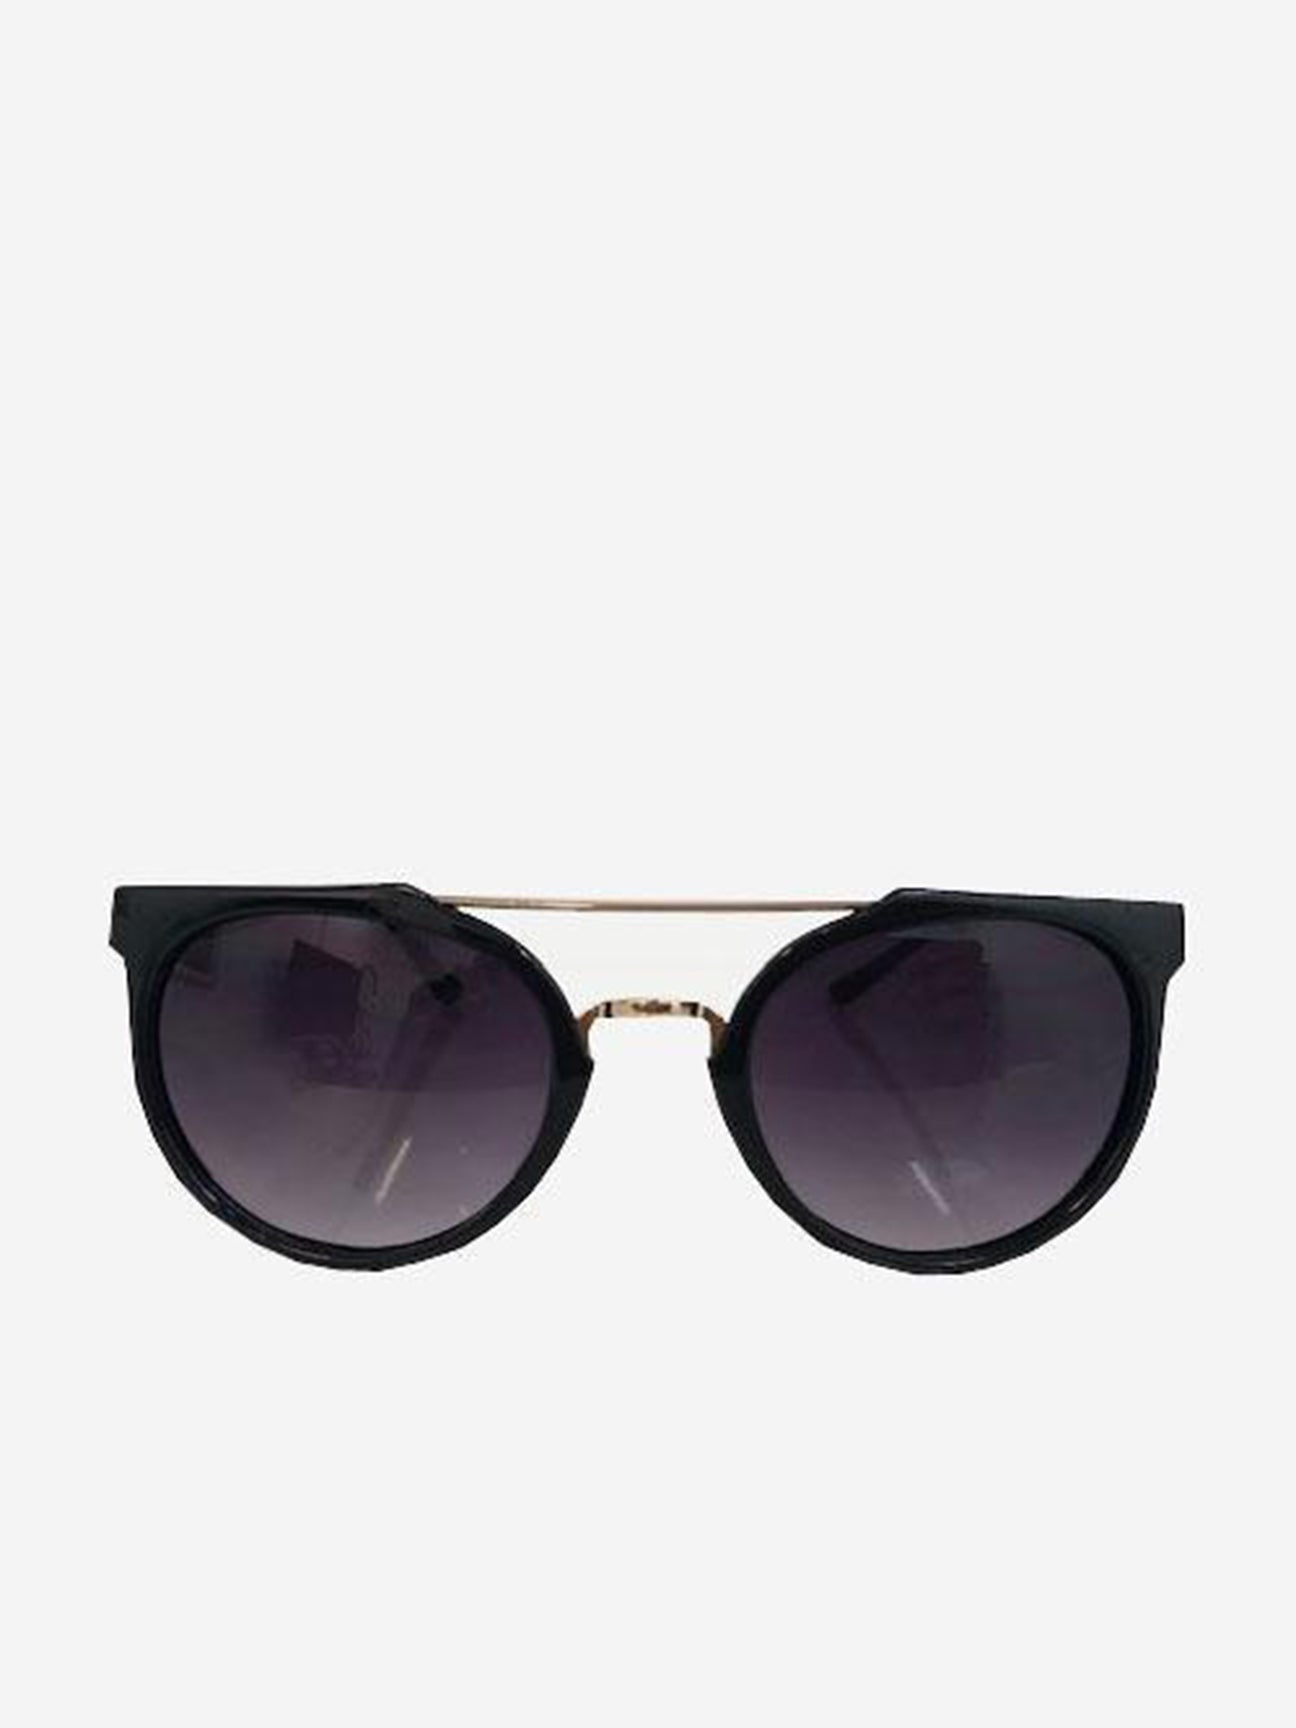 Rounded retro sunglasses with gold legs and double bridge in shine frame